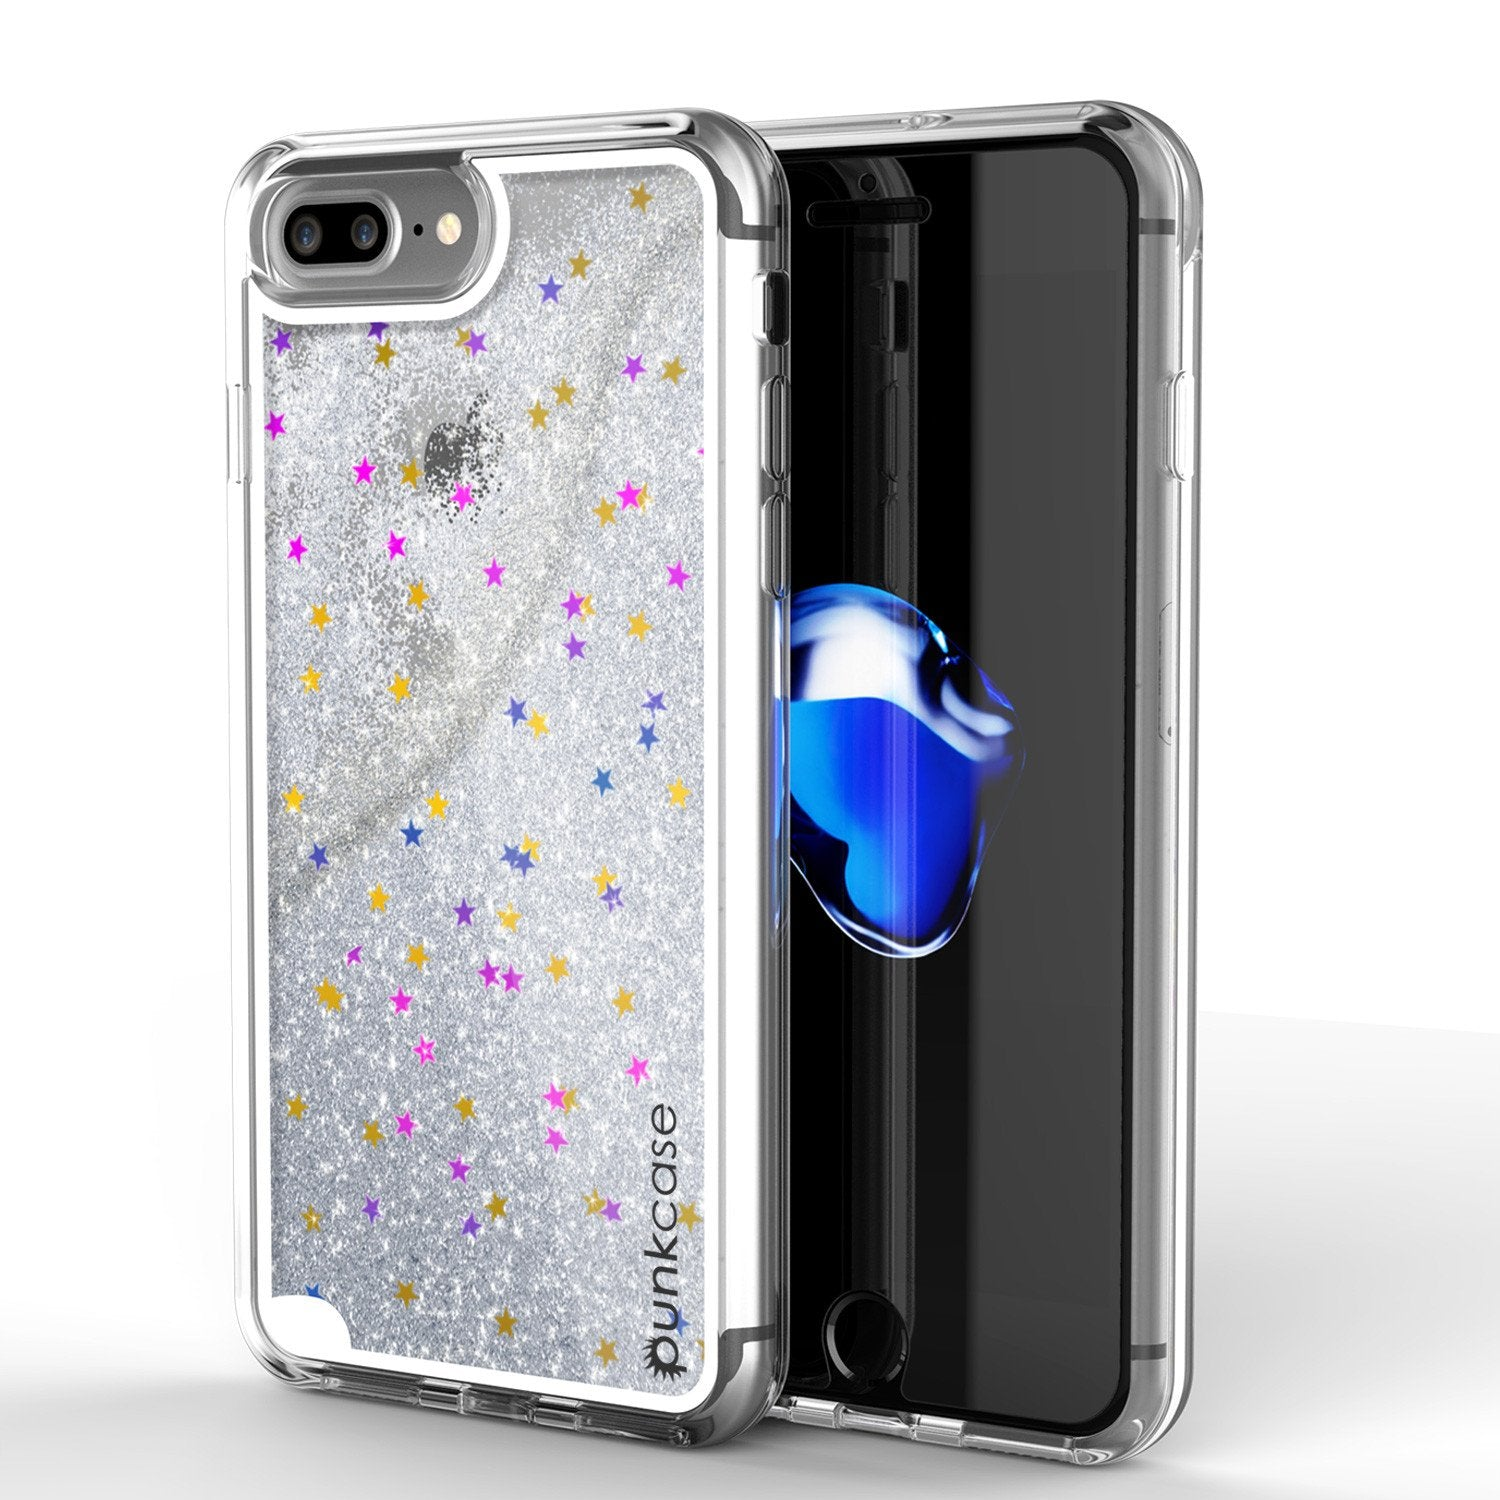 iPhone 7 Plus Case, PunkCase LIQUID Silver Series, Protective Dual Layer Floating Glitter Cover